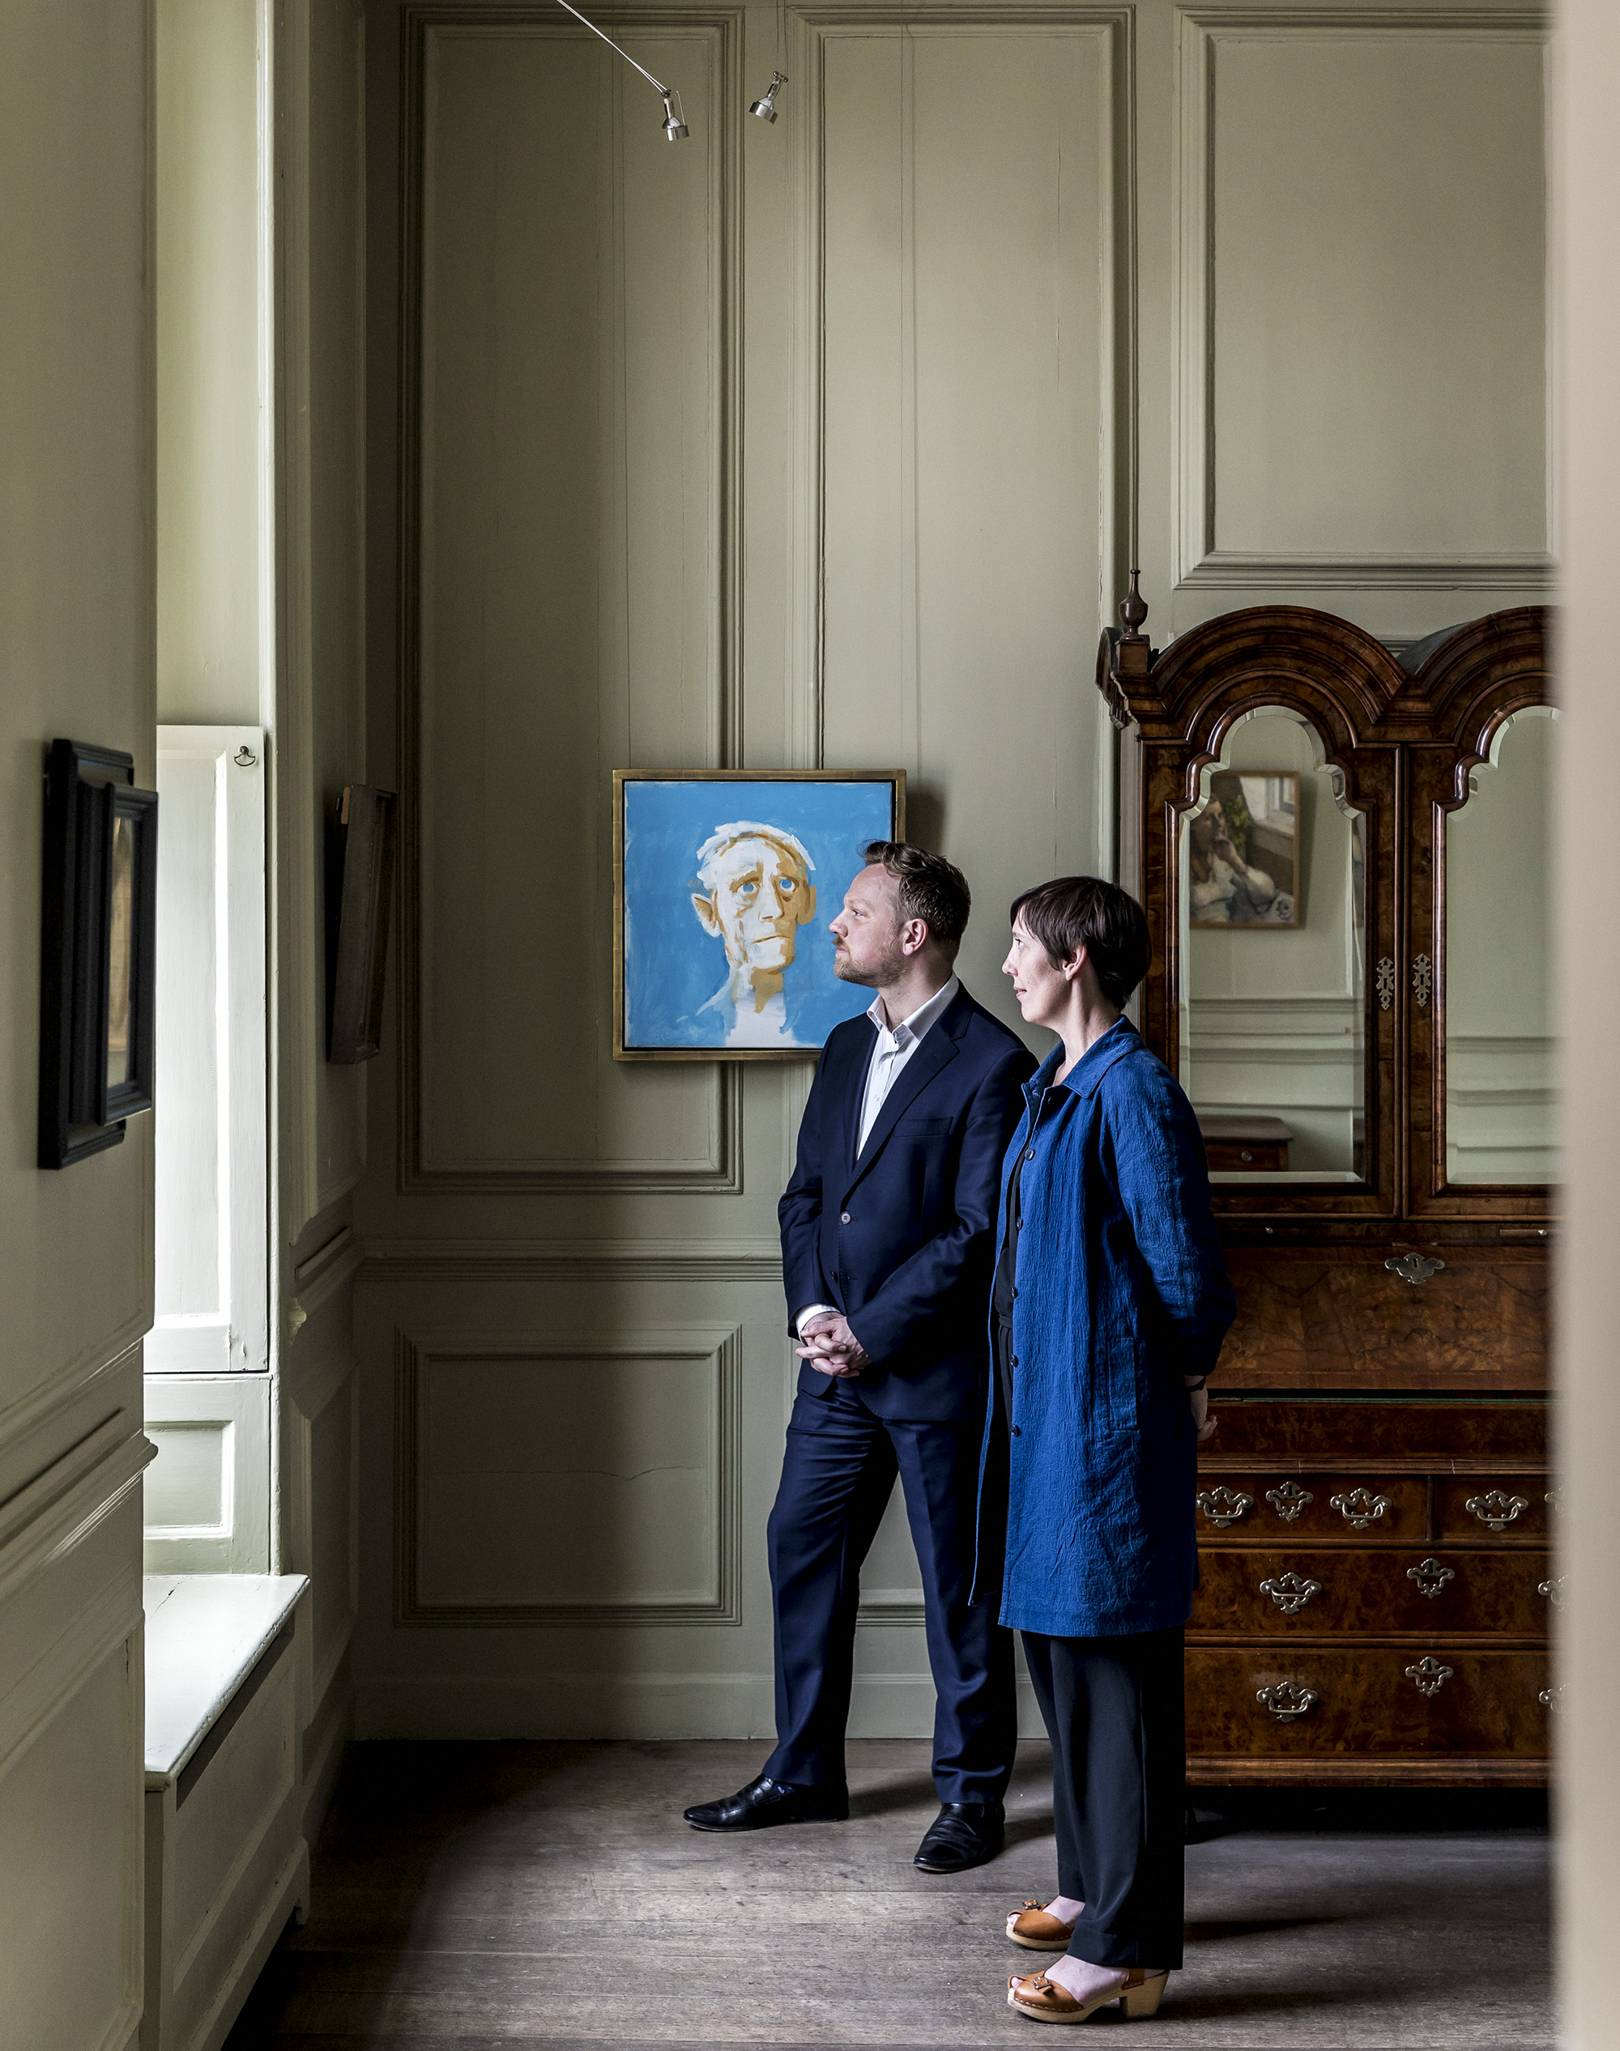 The director of Pallant House Gallery is at the heart of Sussex's creative community